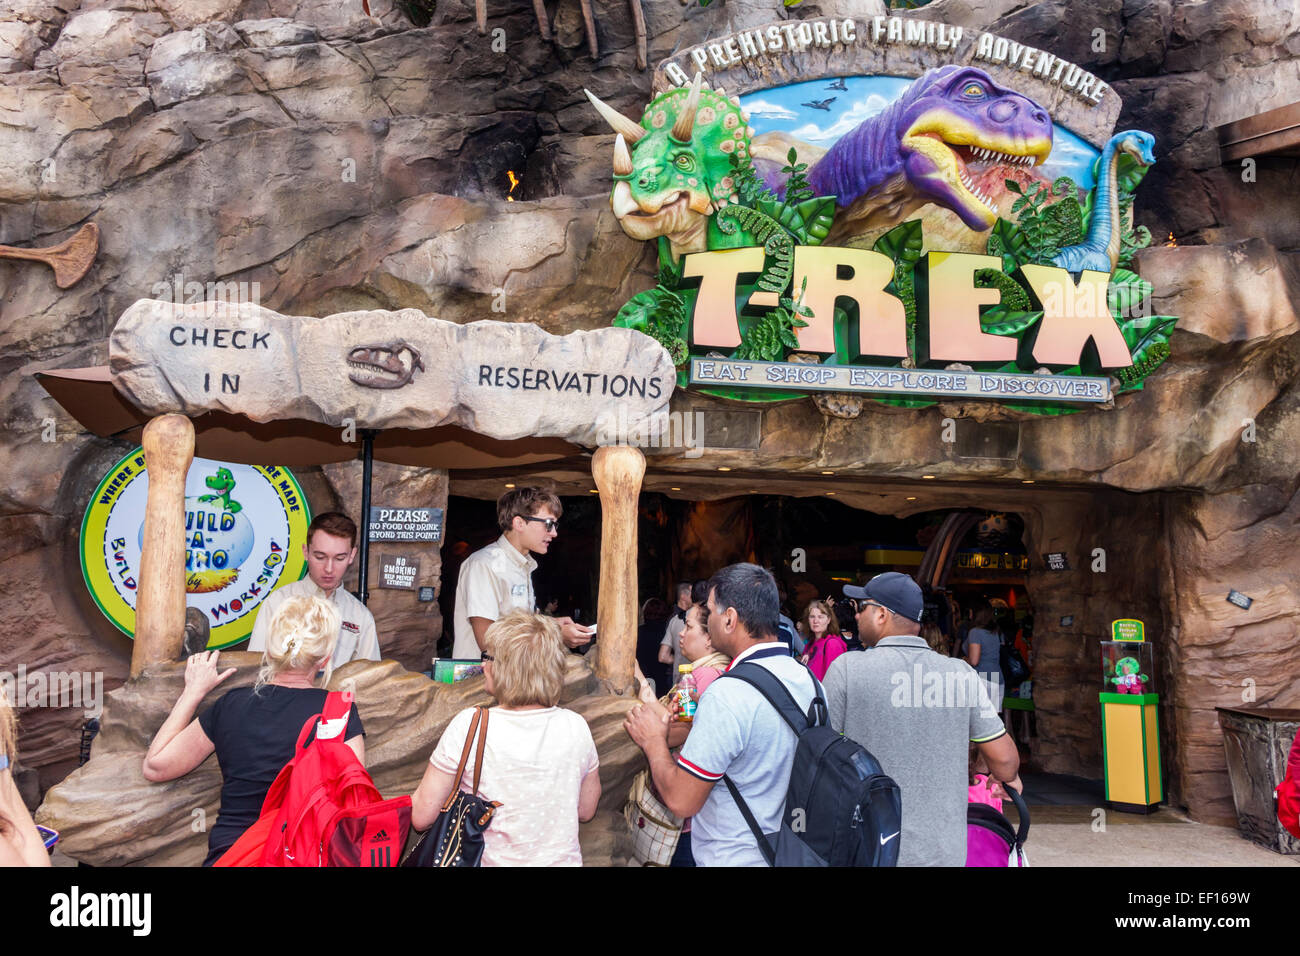 Floride Orlando Lake Buena Vista Downtown Disney shopping restauration divertissement T-Rex dinosaure file d'entrée Photo Stock